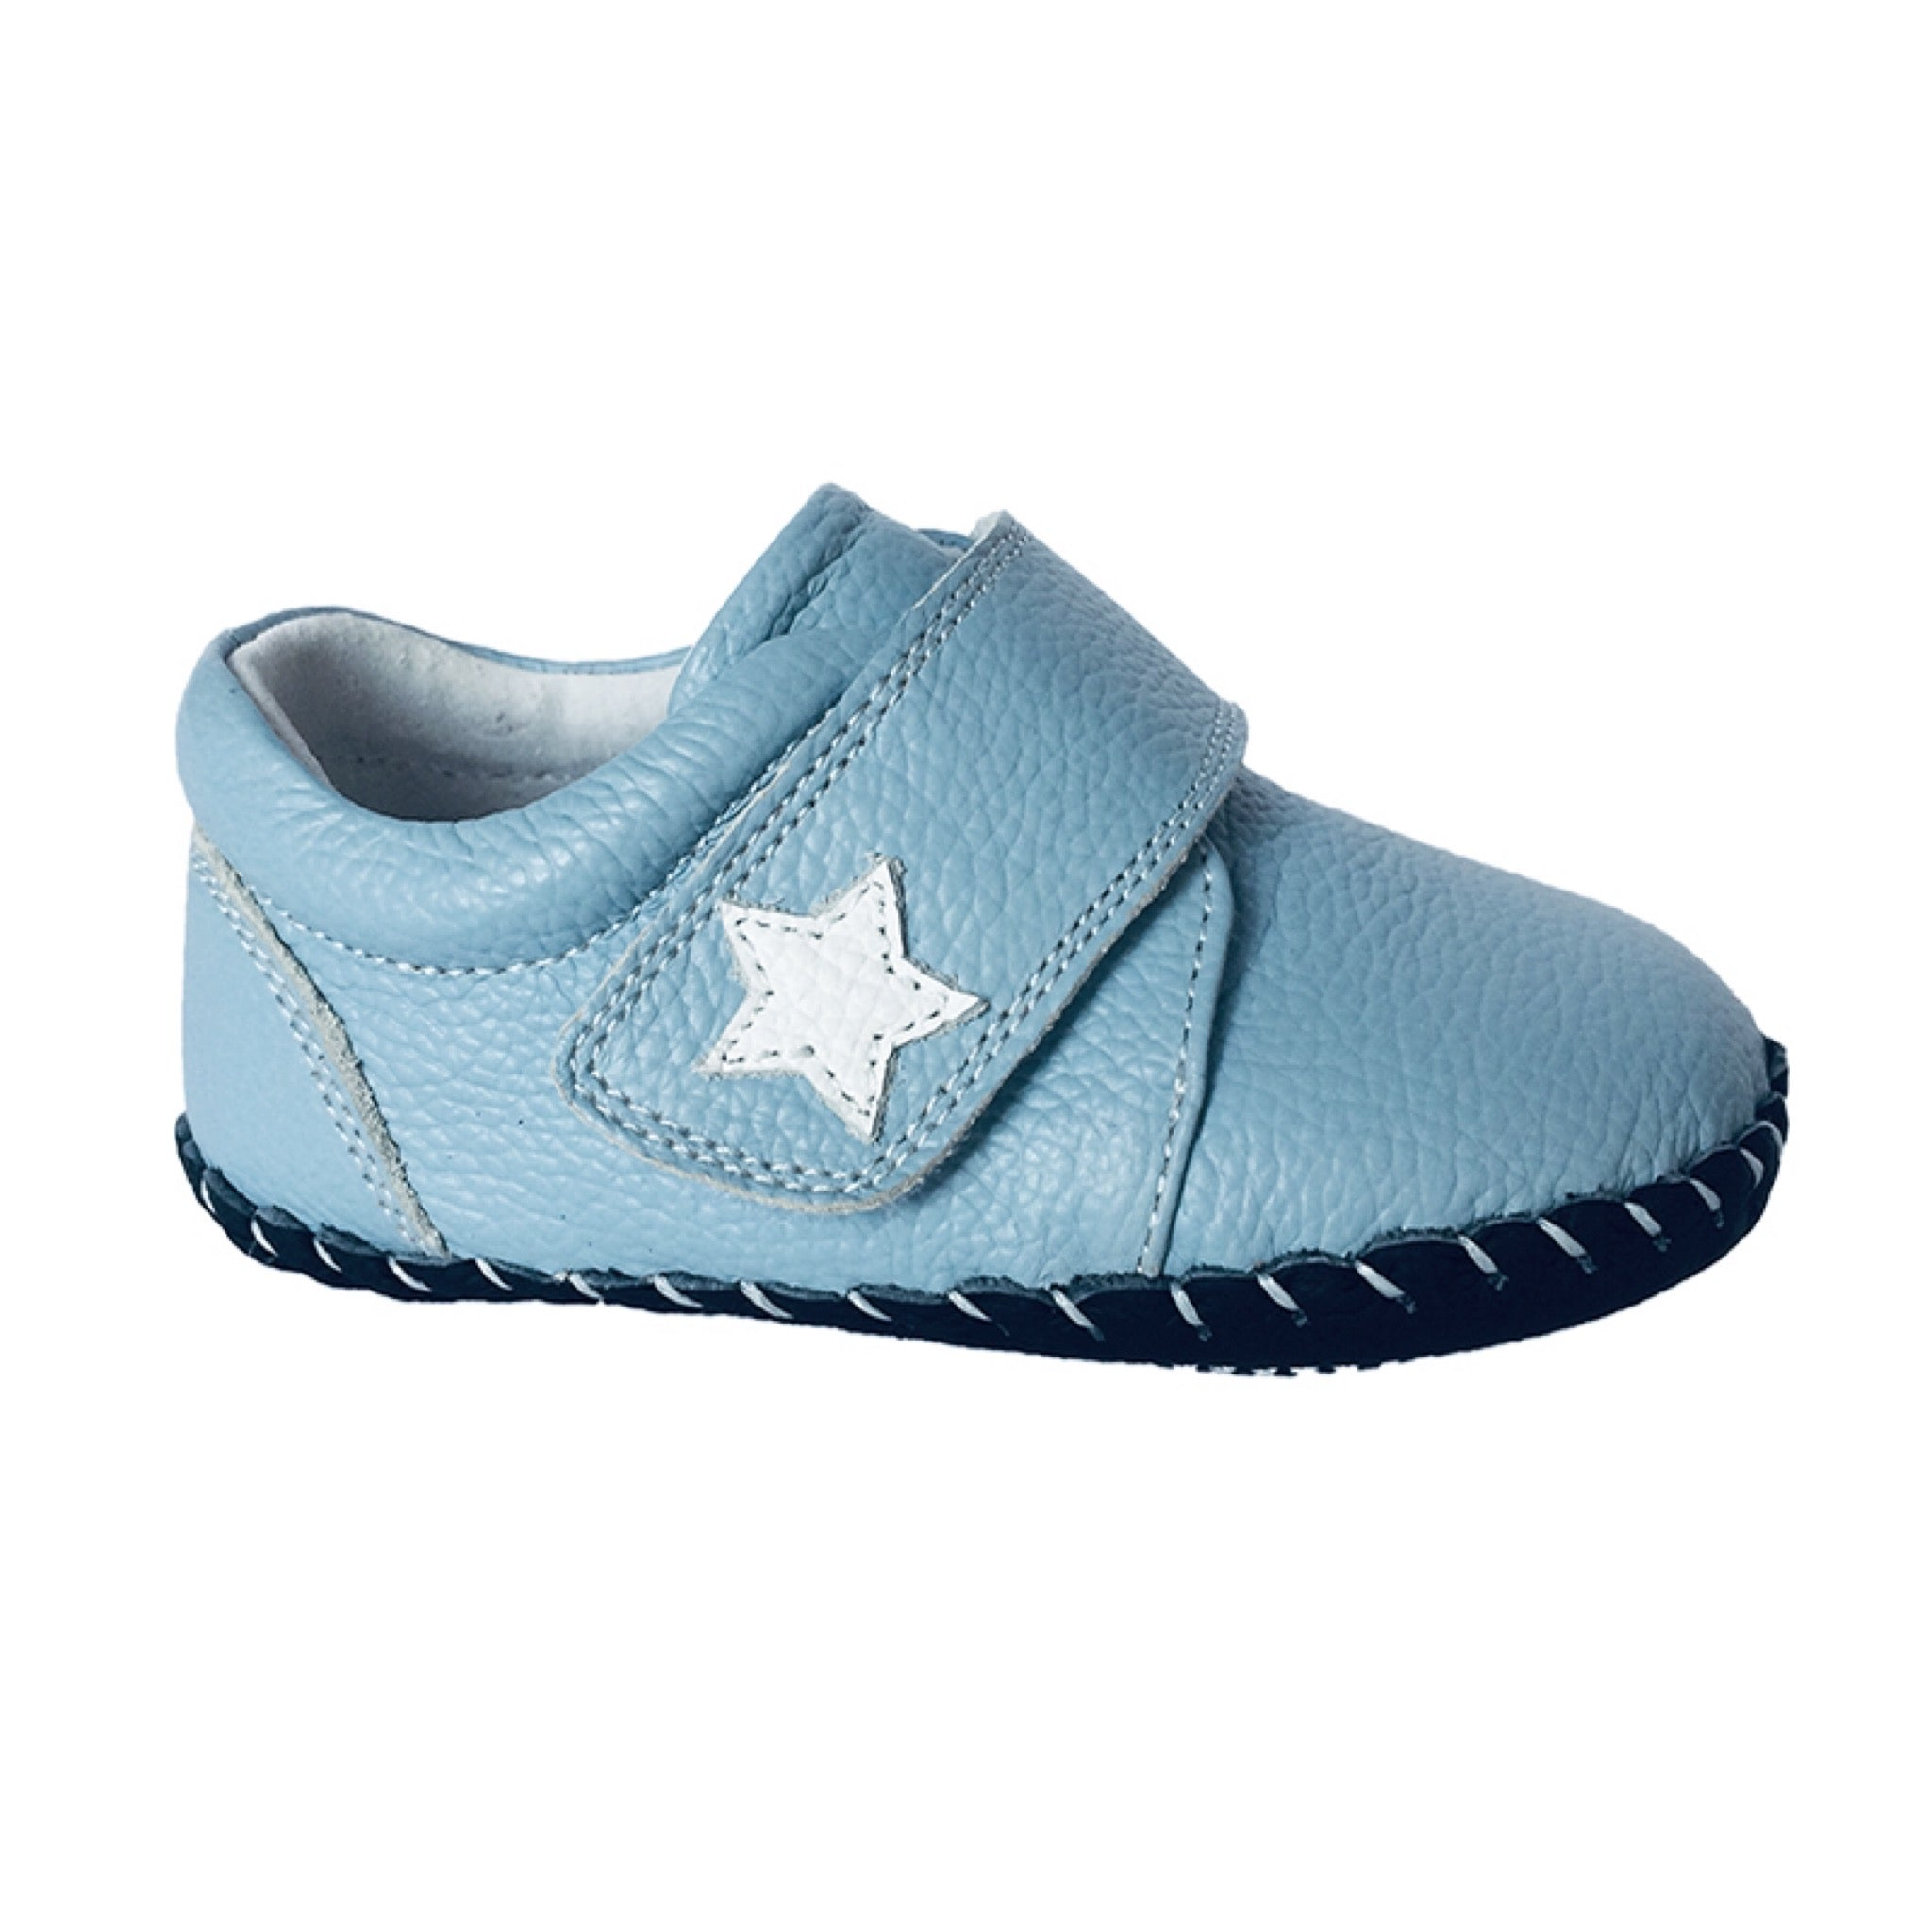 MerryGo Sky Light Blue Star Baby Shoes (code Jan 2021)